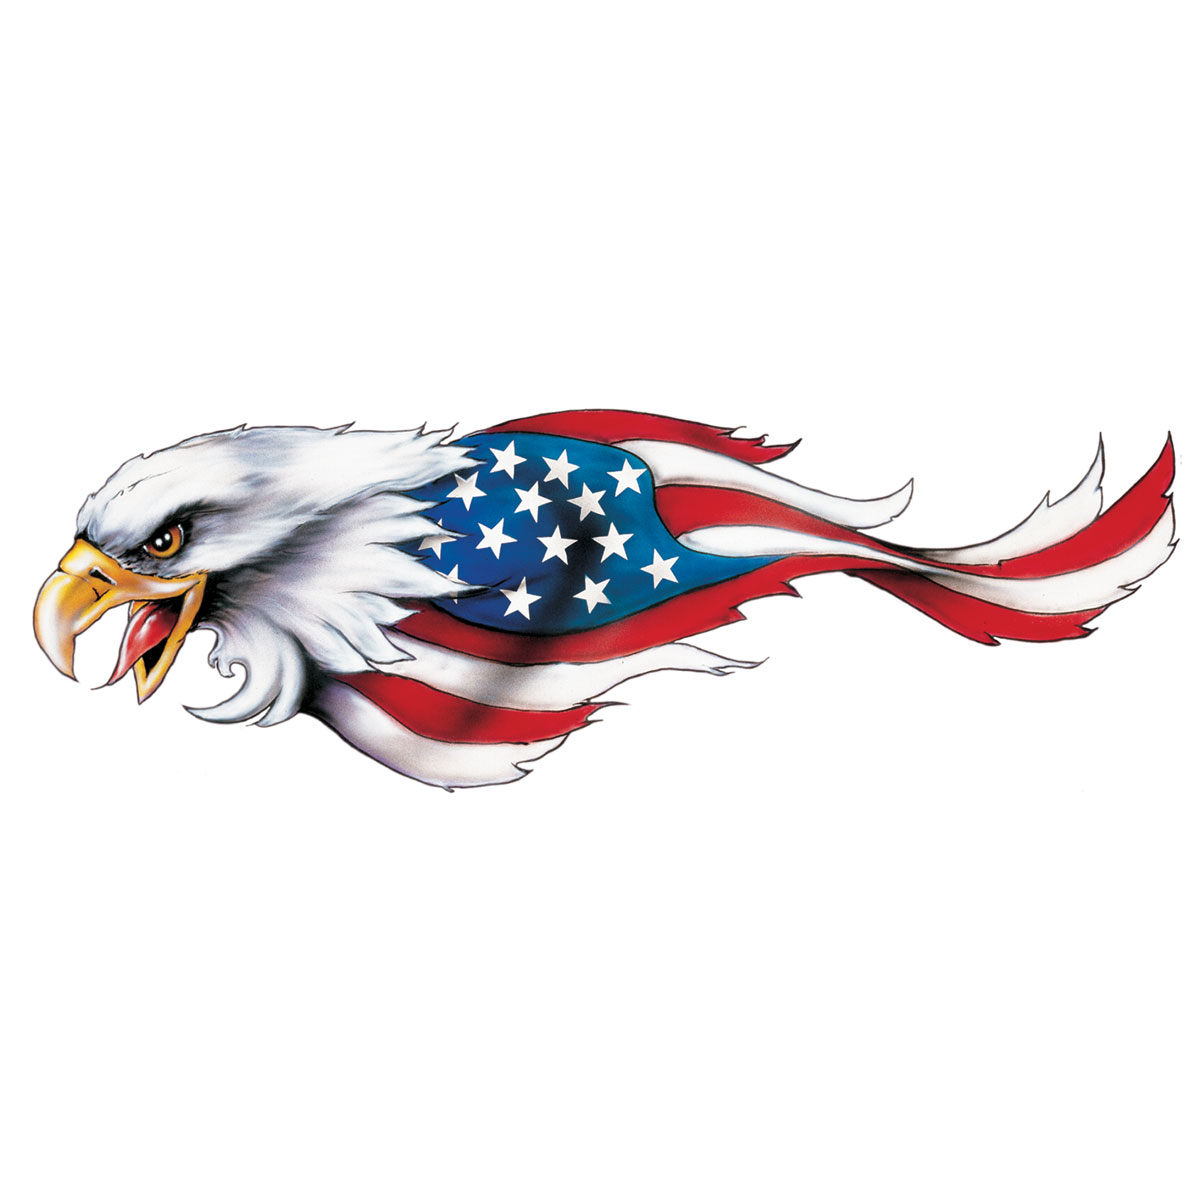 Lethal threat clipart clipart black and white download Lethal Threat USA Eagle Decal - Left - LT00403 clipart black and white download